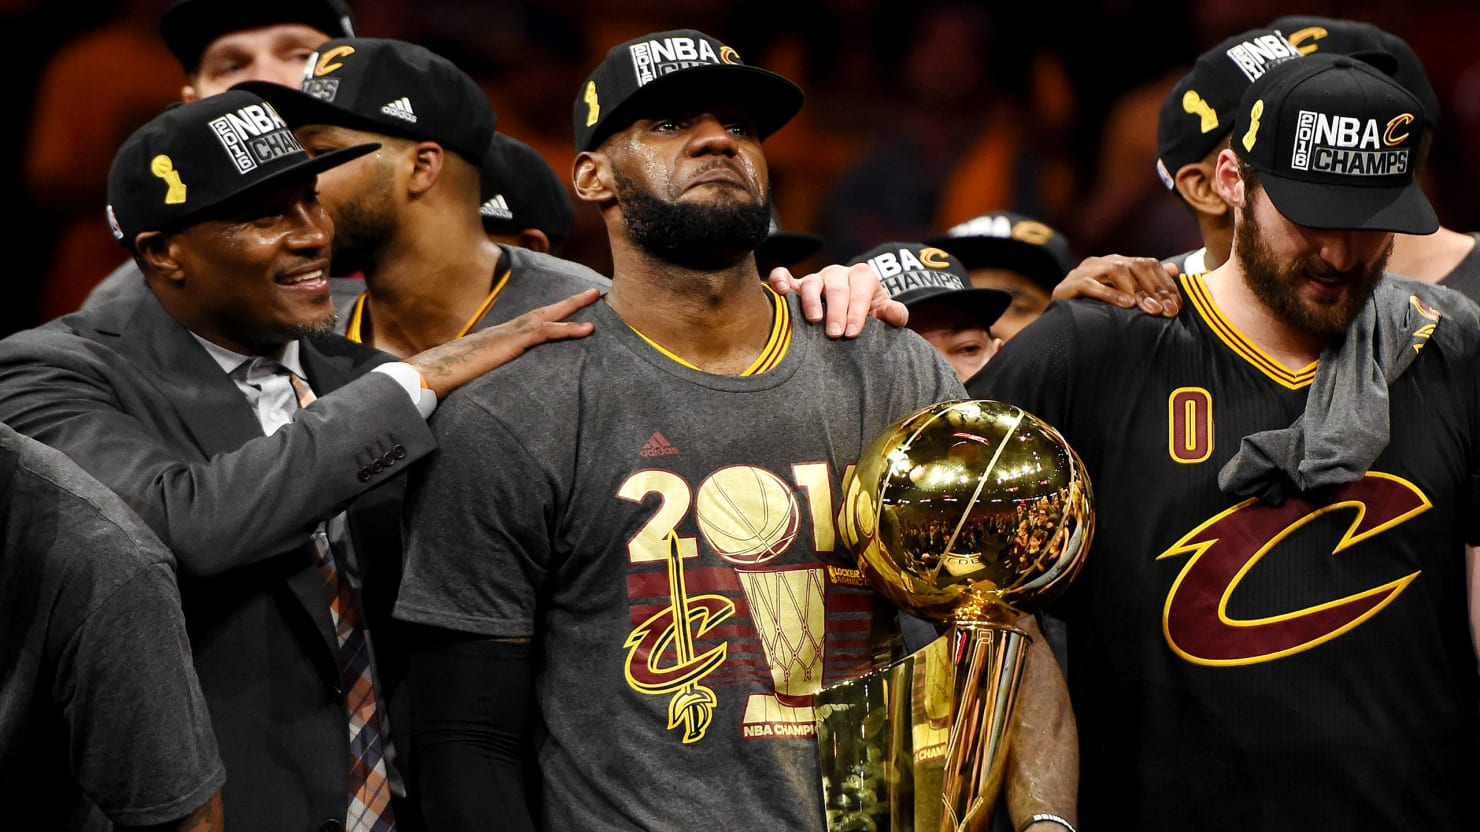 All Hail King James or How I Learned to Stop Worrying and Love LeBron